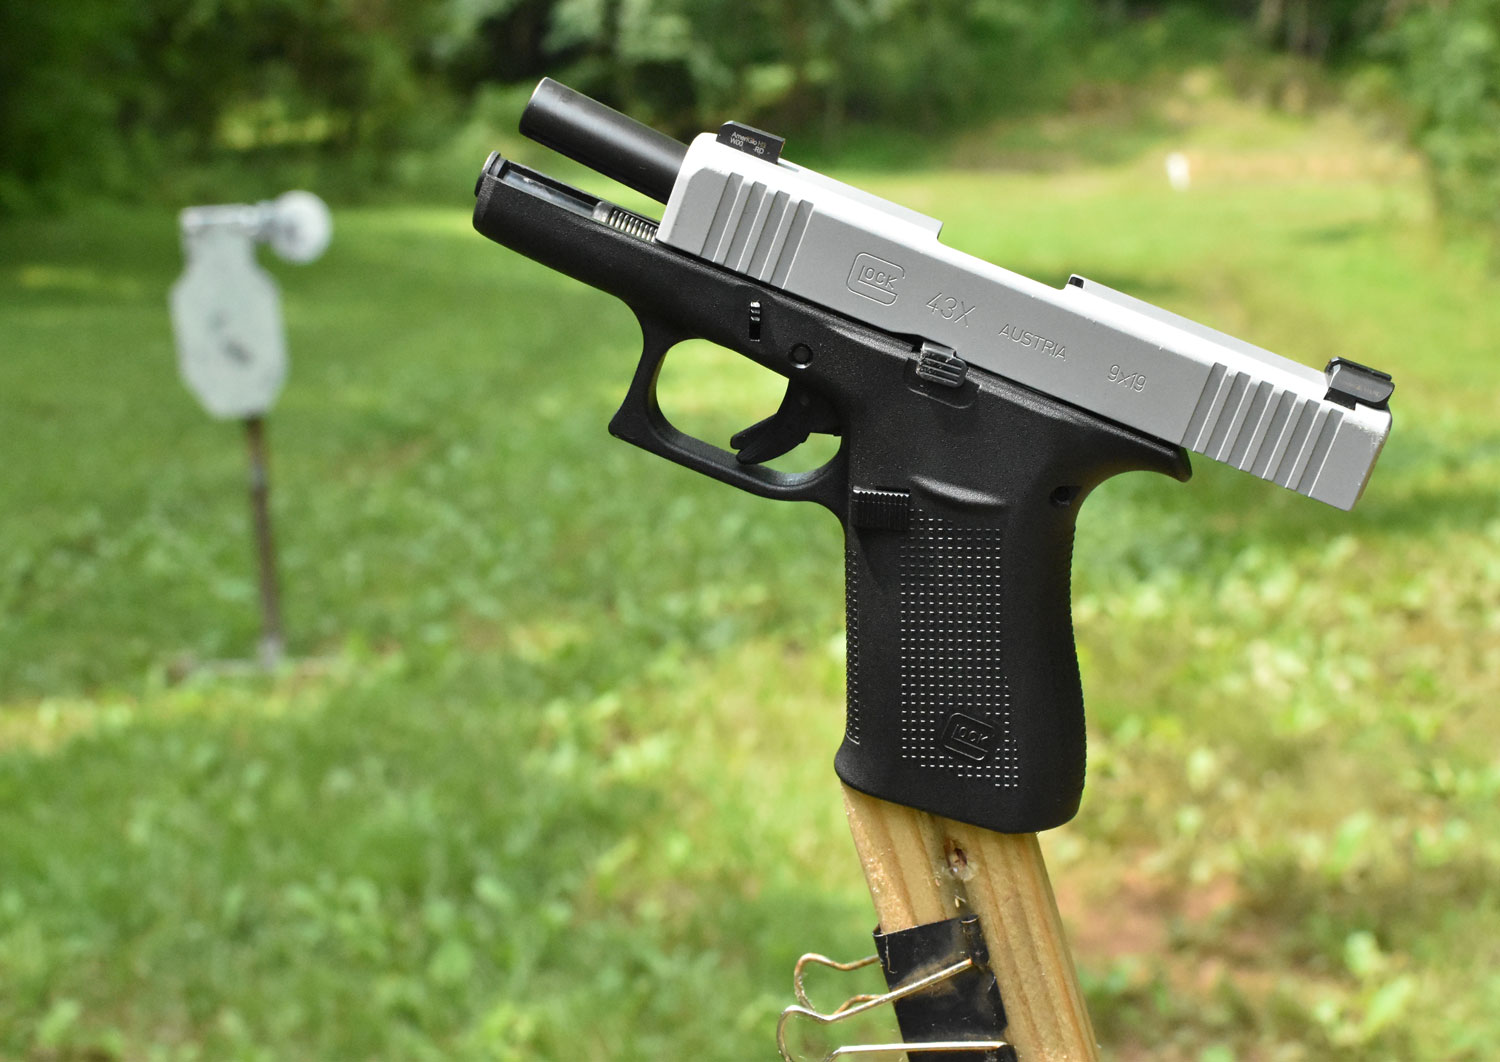 A glock handgun at the shooting range